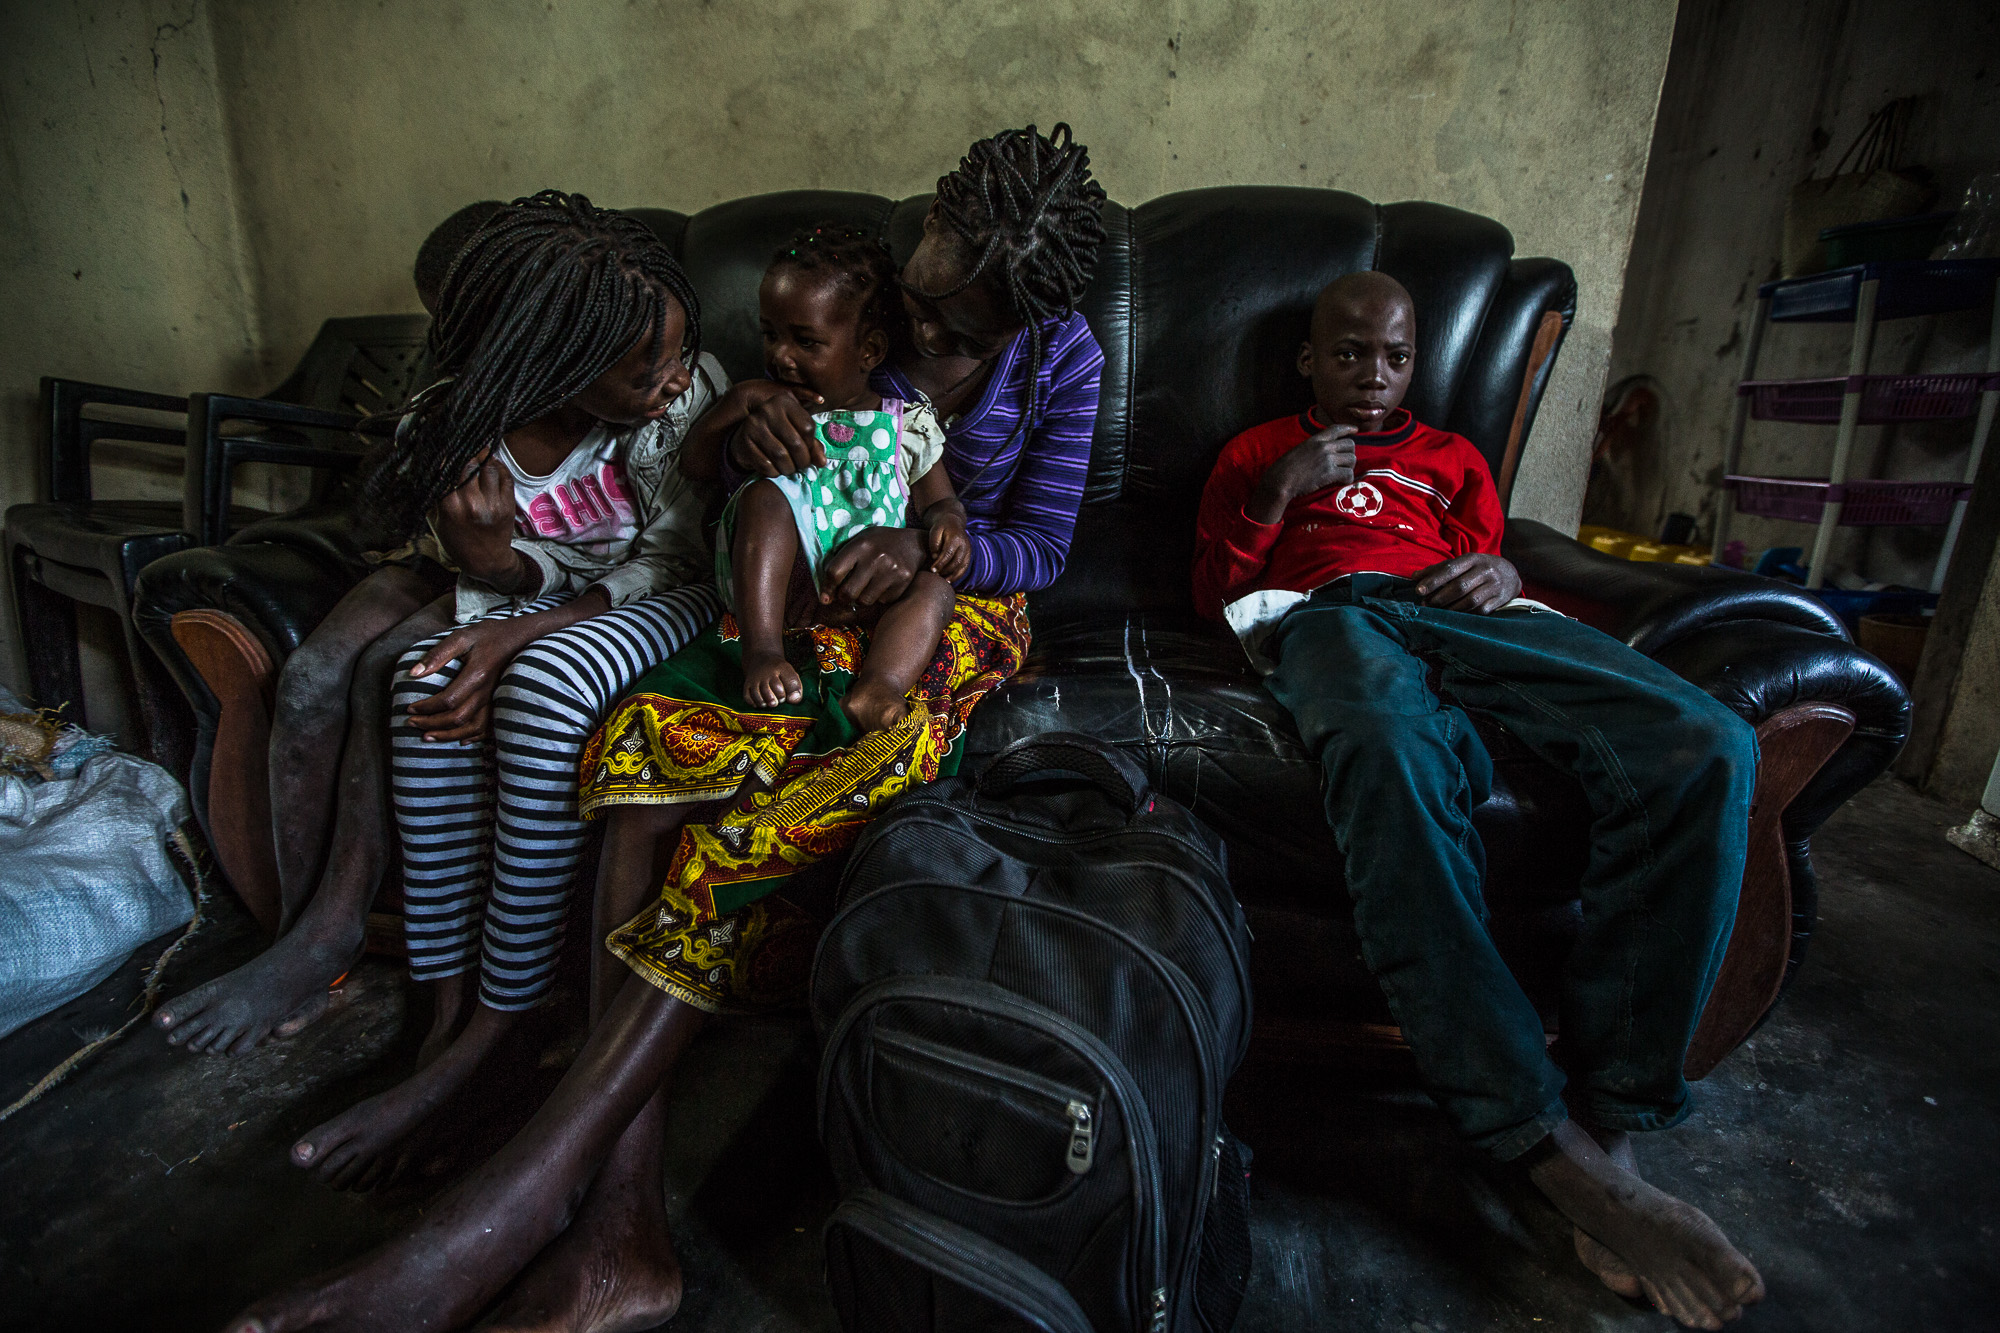 Salima spends most of her days watching TV at home with her kids.